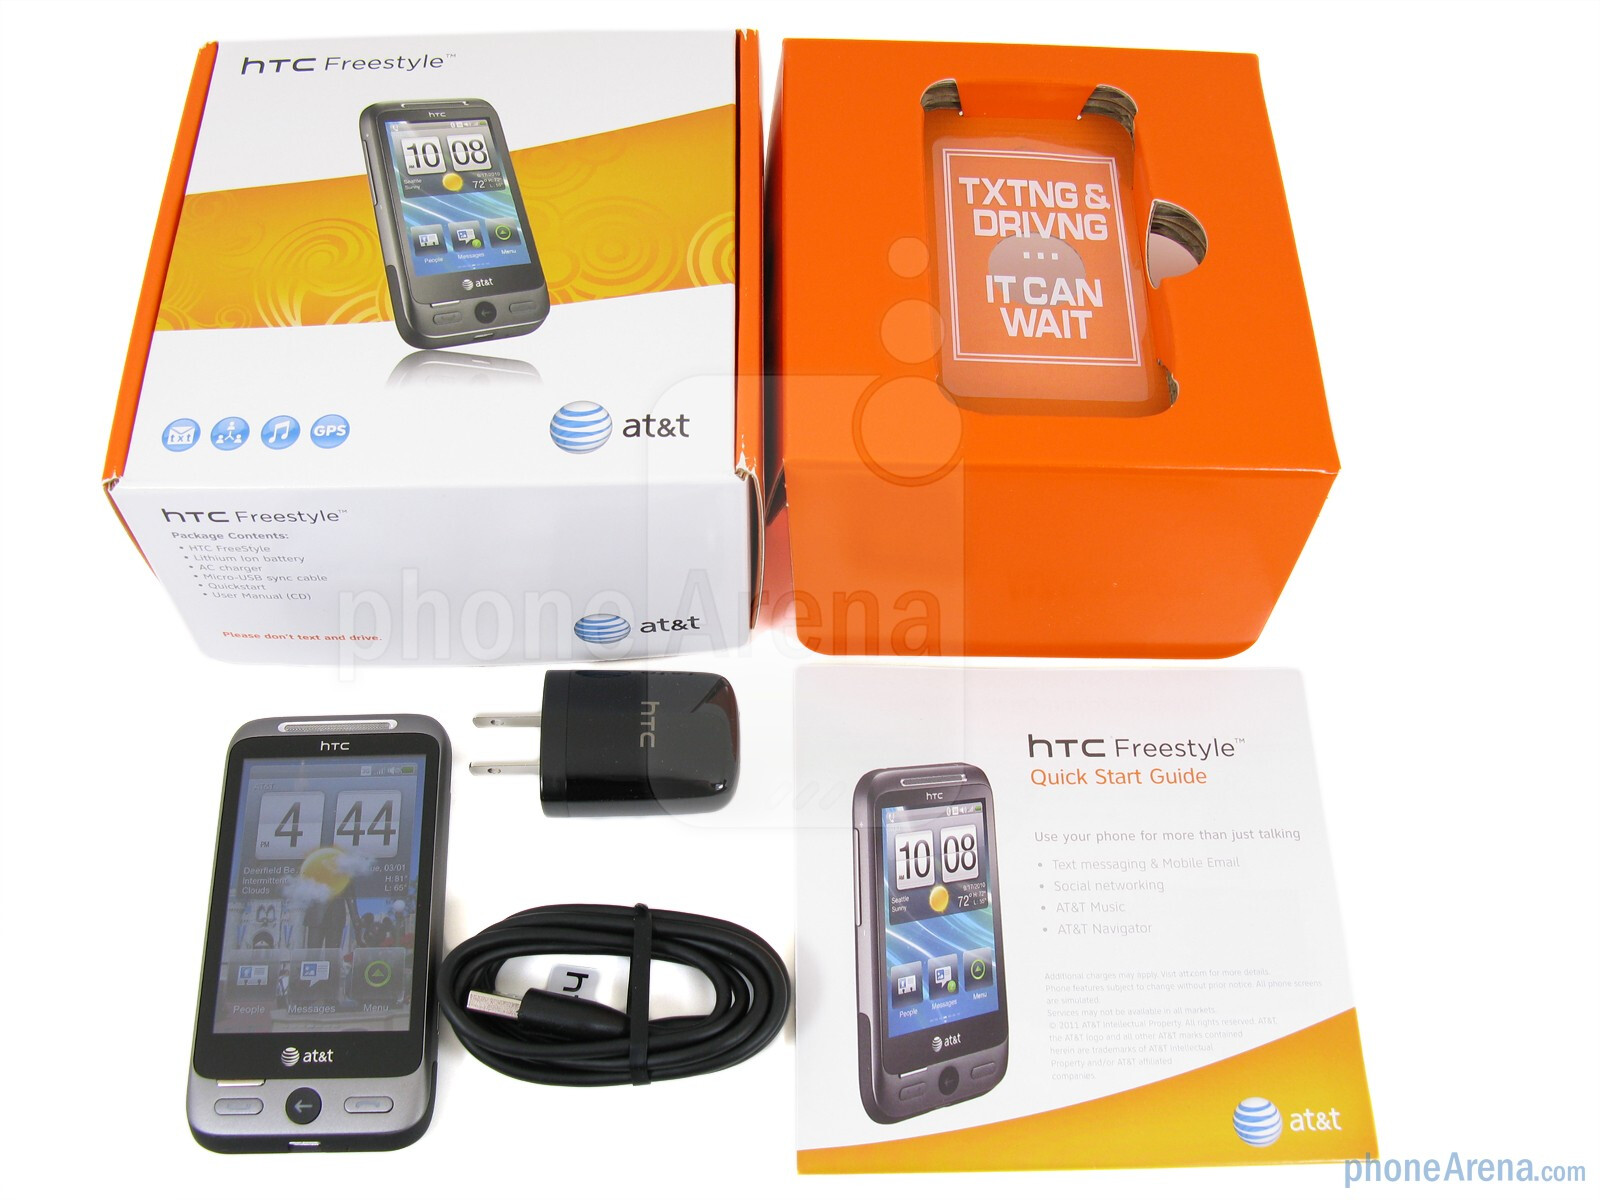 htc freestyle review Considering the htc freestyle get all the reviews in one place, compare prices, ask questions & more.